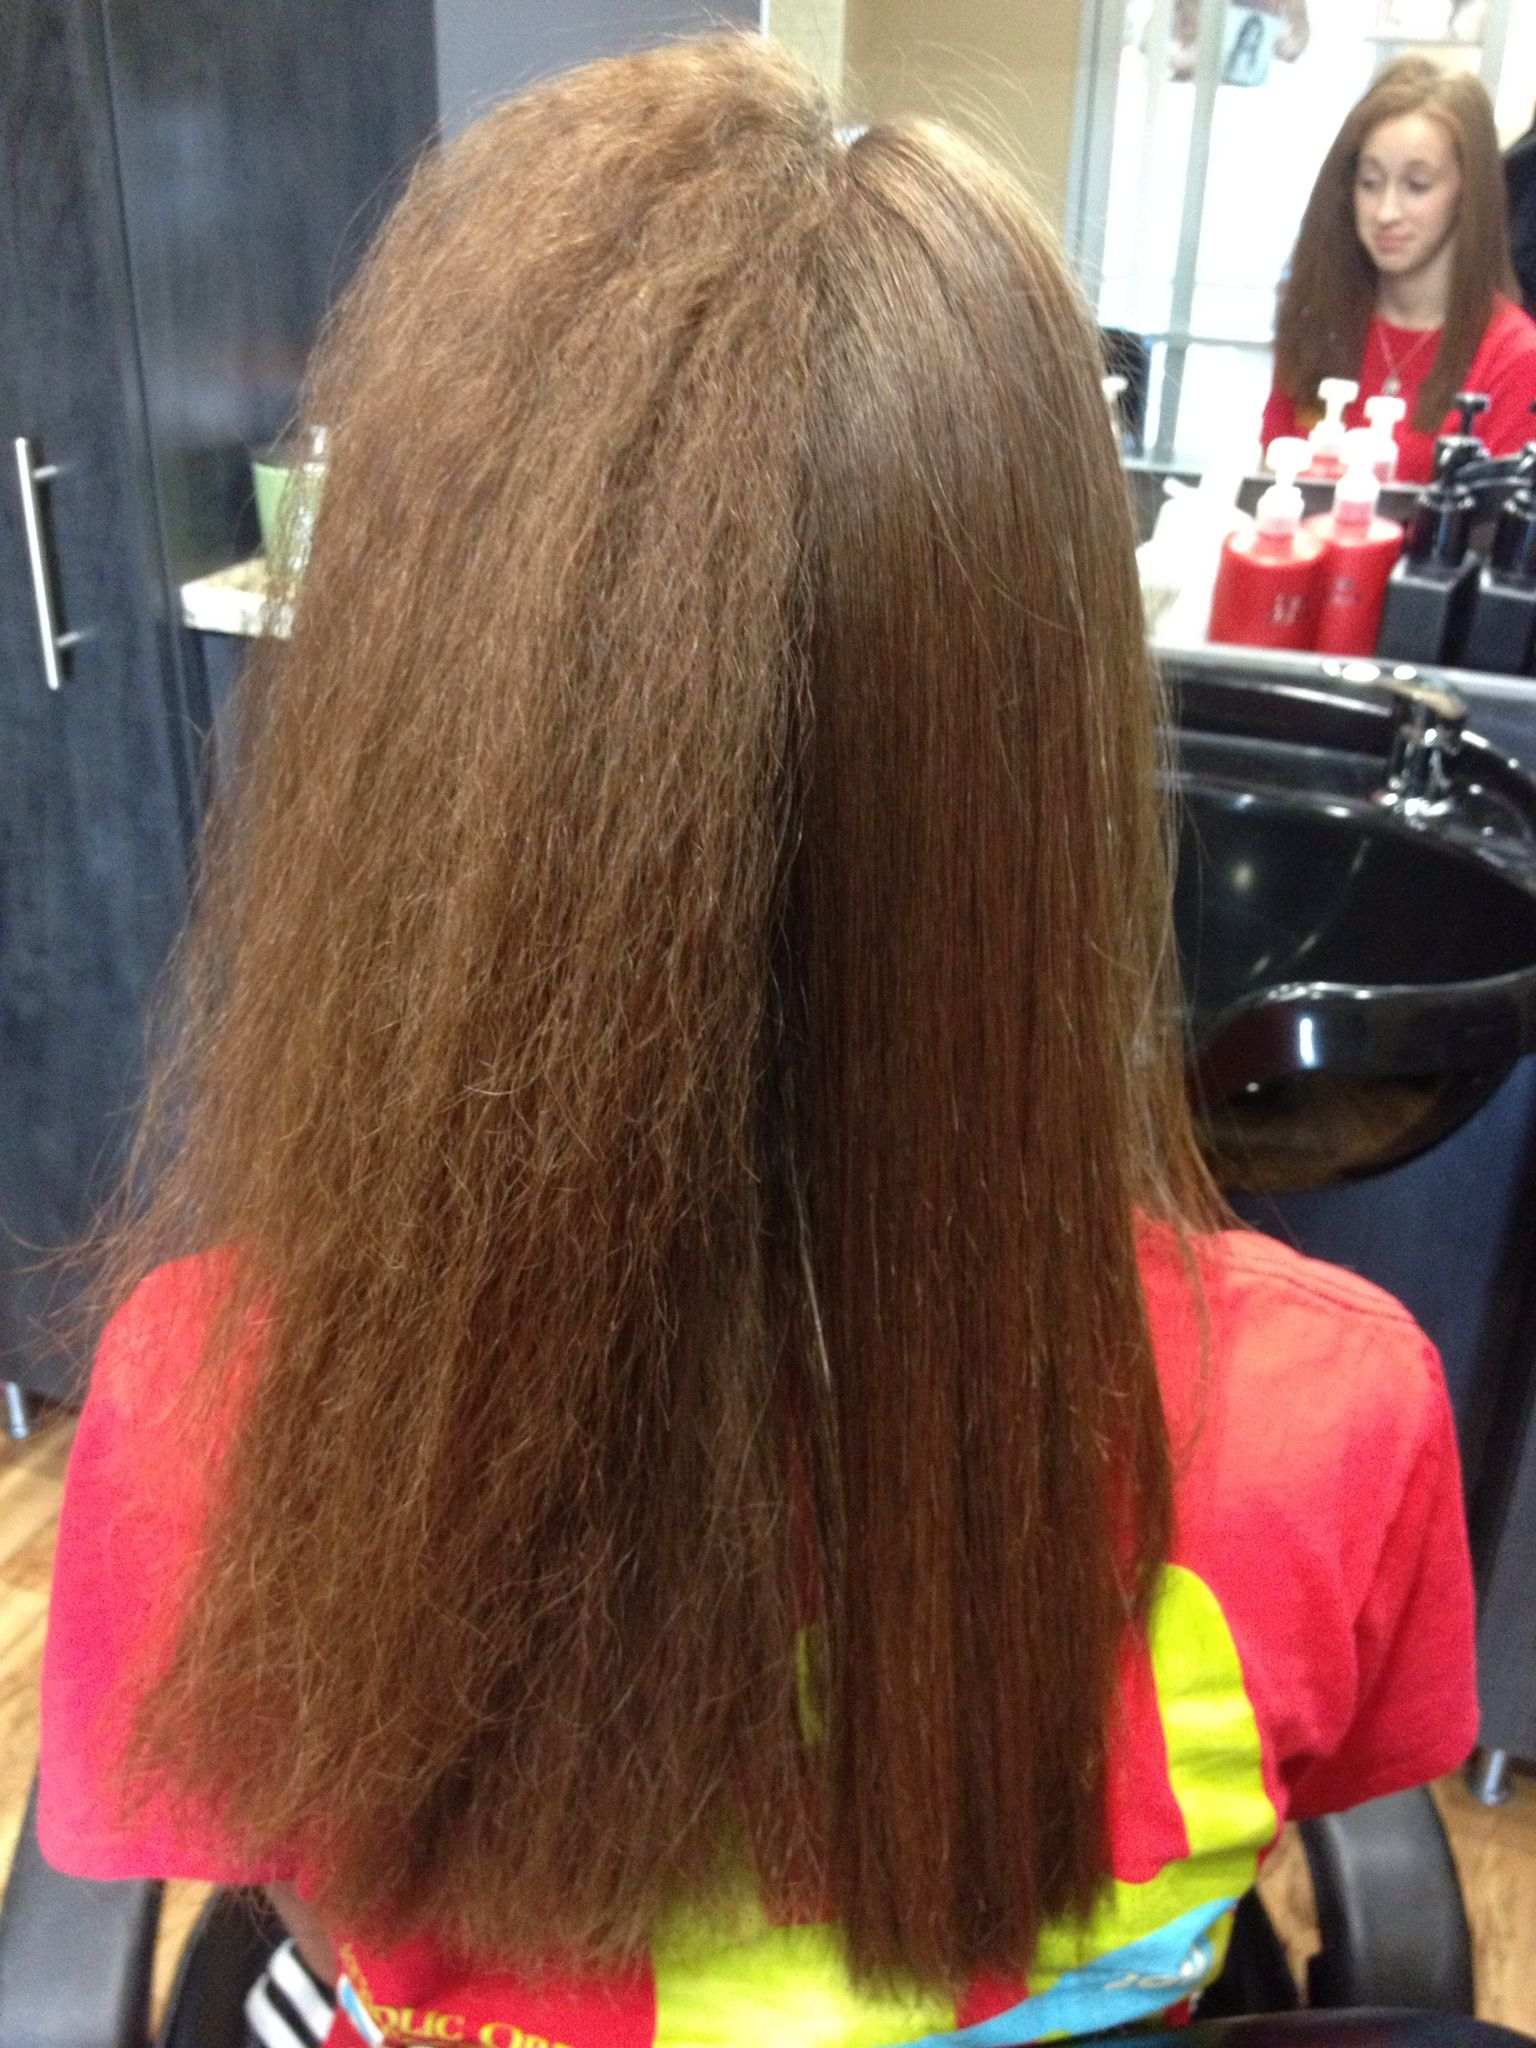 Amazing and Real results from the Brazilian Blowout